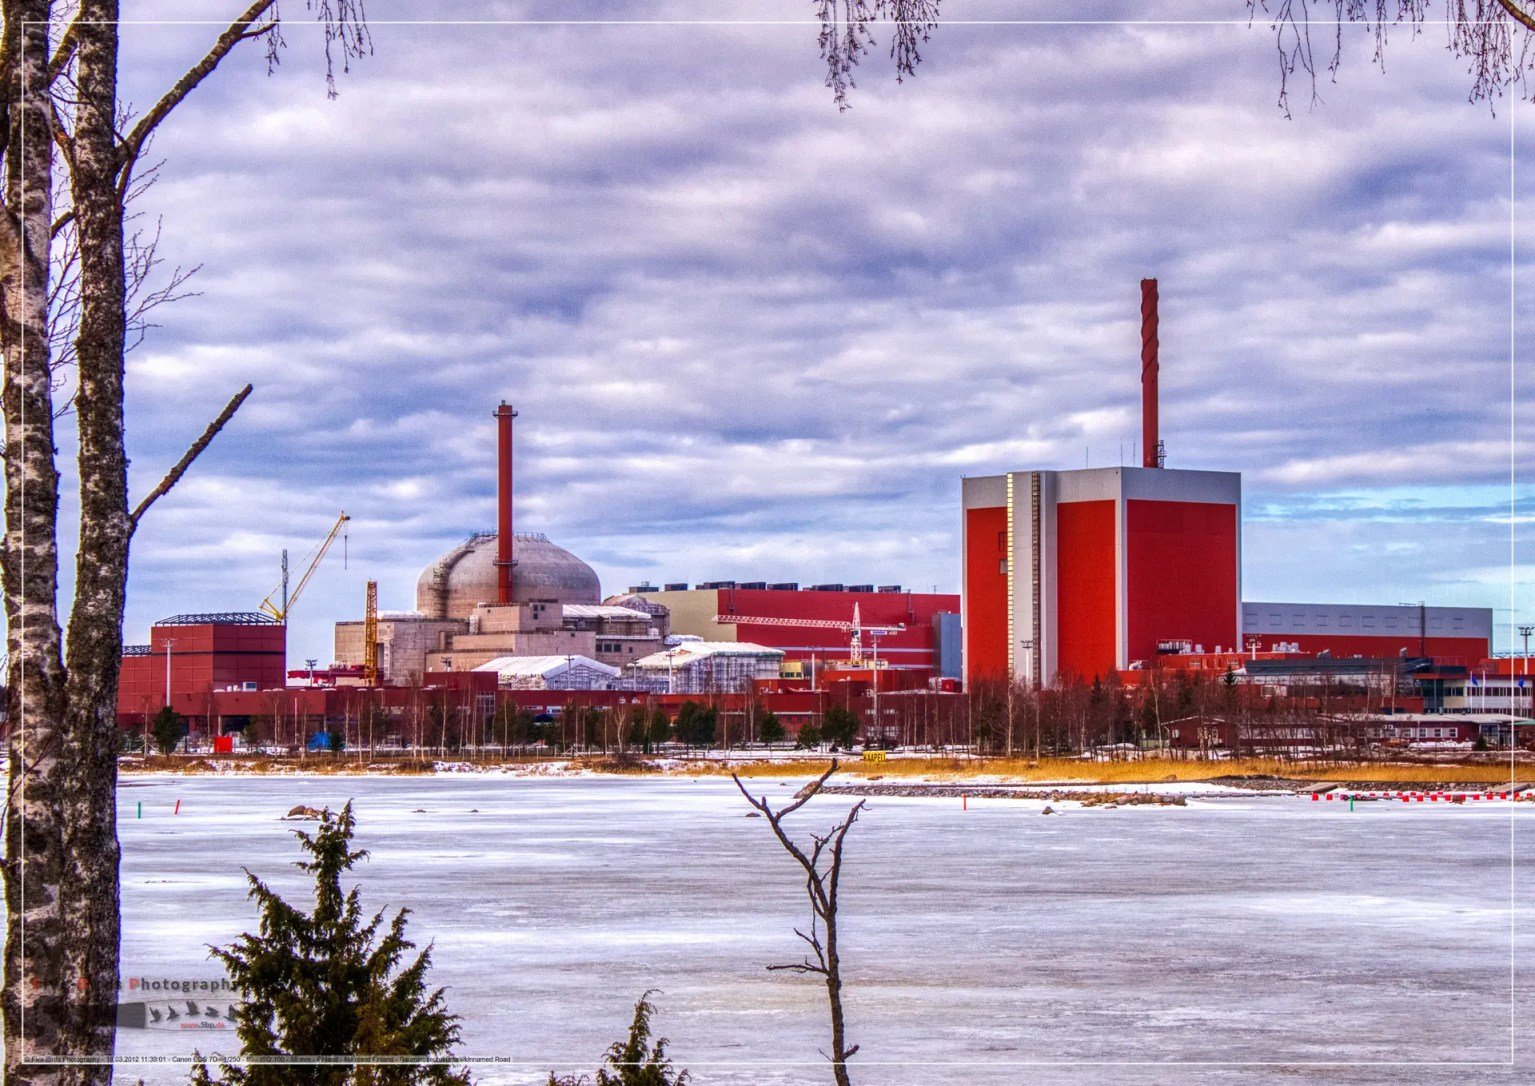 Image of the Finnish Olkiluoto 3 (left) and 1 (right) nuclear power plants